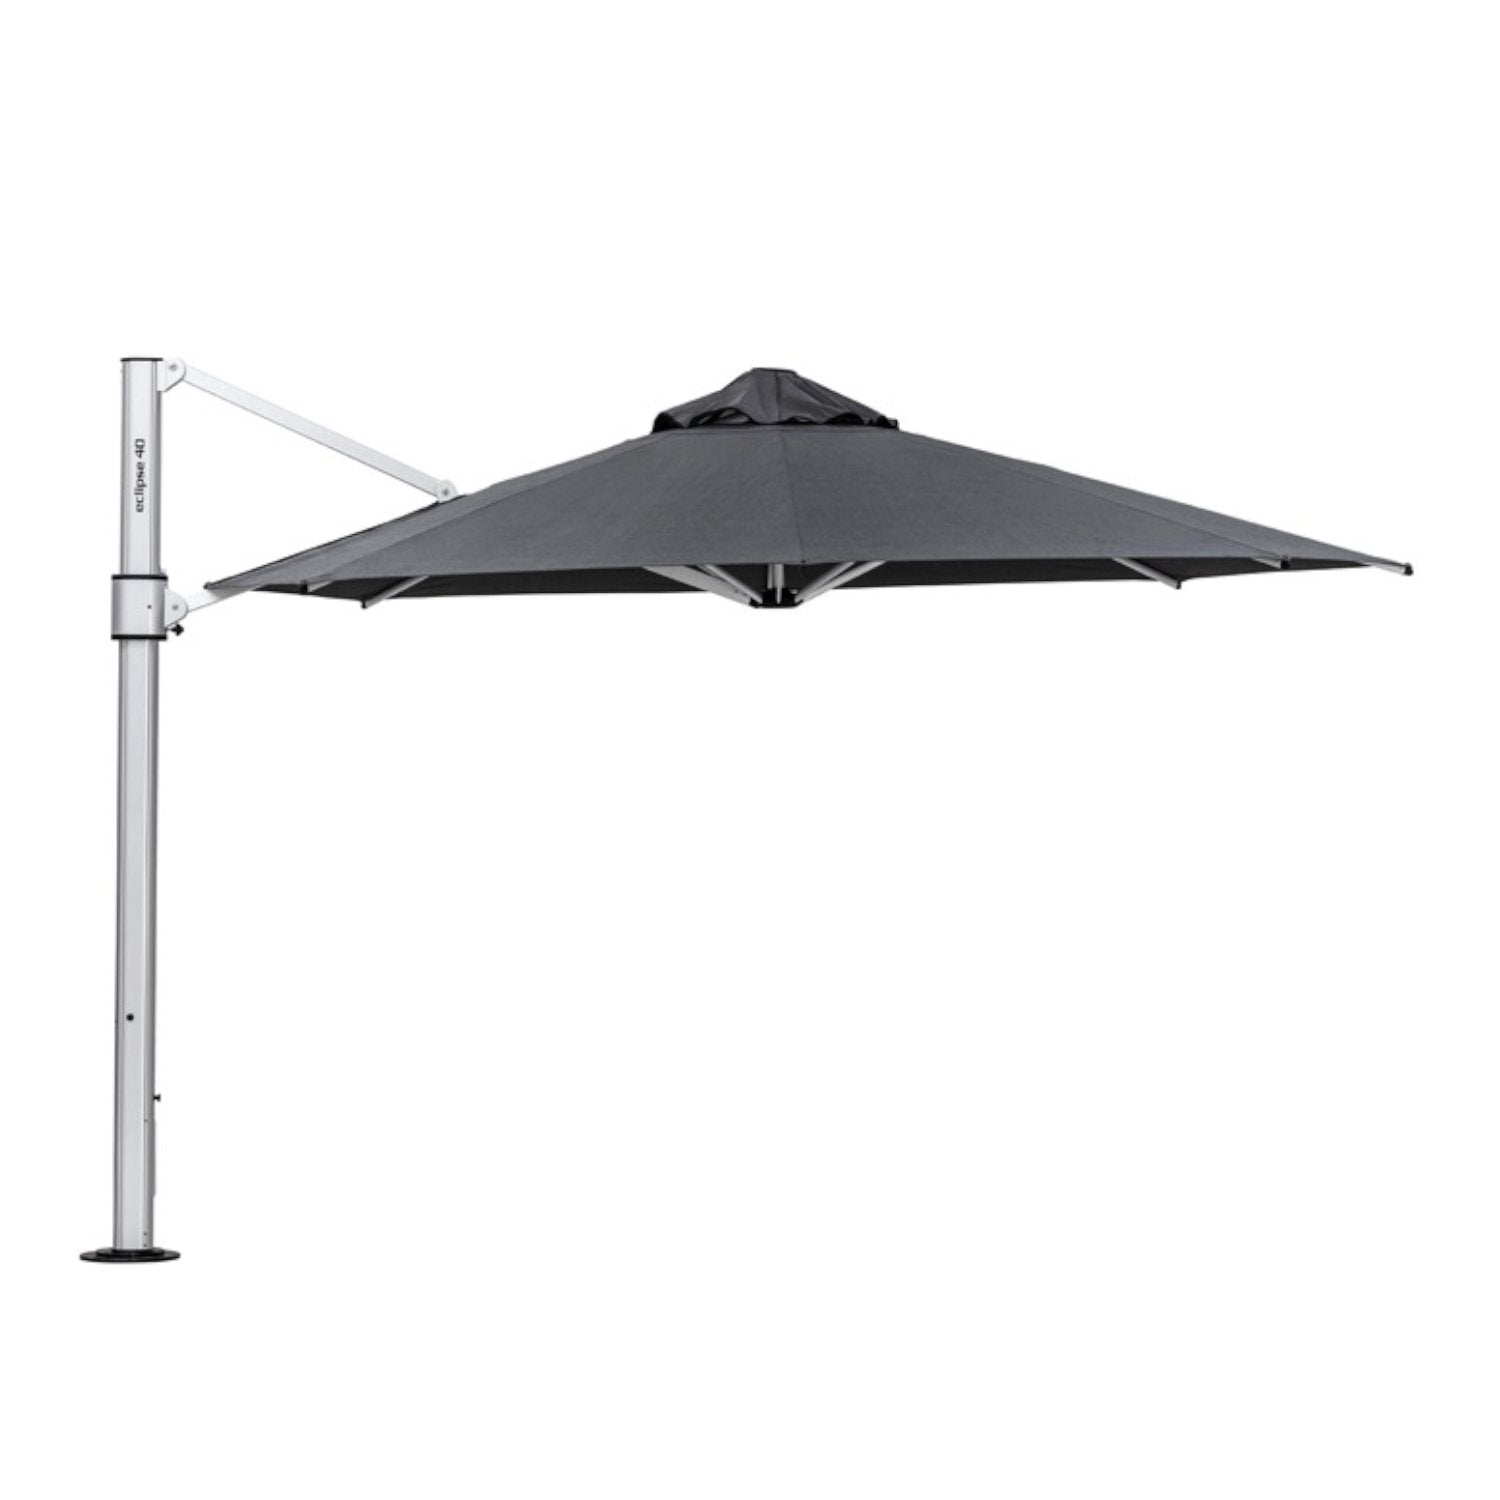 ECLIPSE 2.0 Cantilever Umbrella UMBRELLA ISU - OSMEN OUTDOOR FURNITURE-Sydney Metro Free Delivery